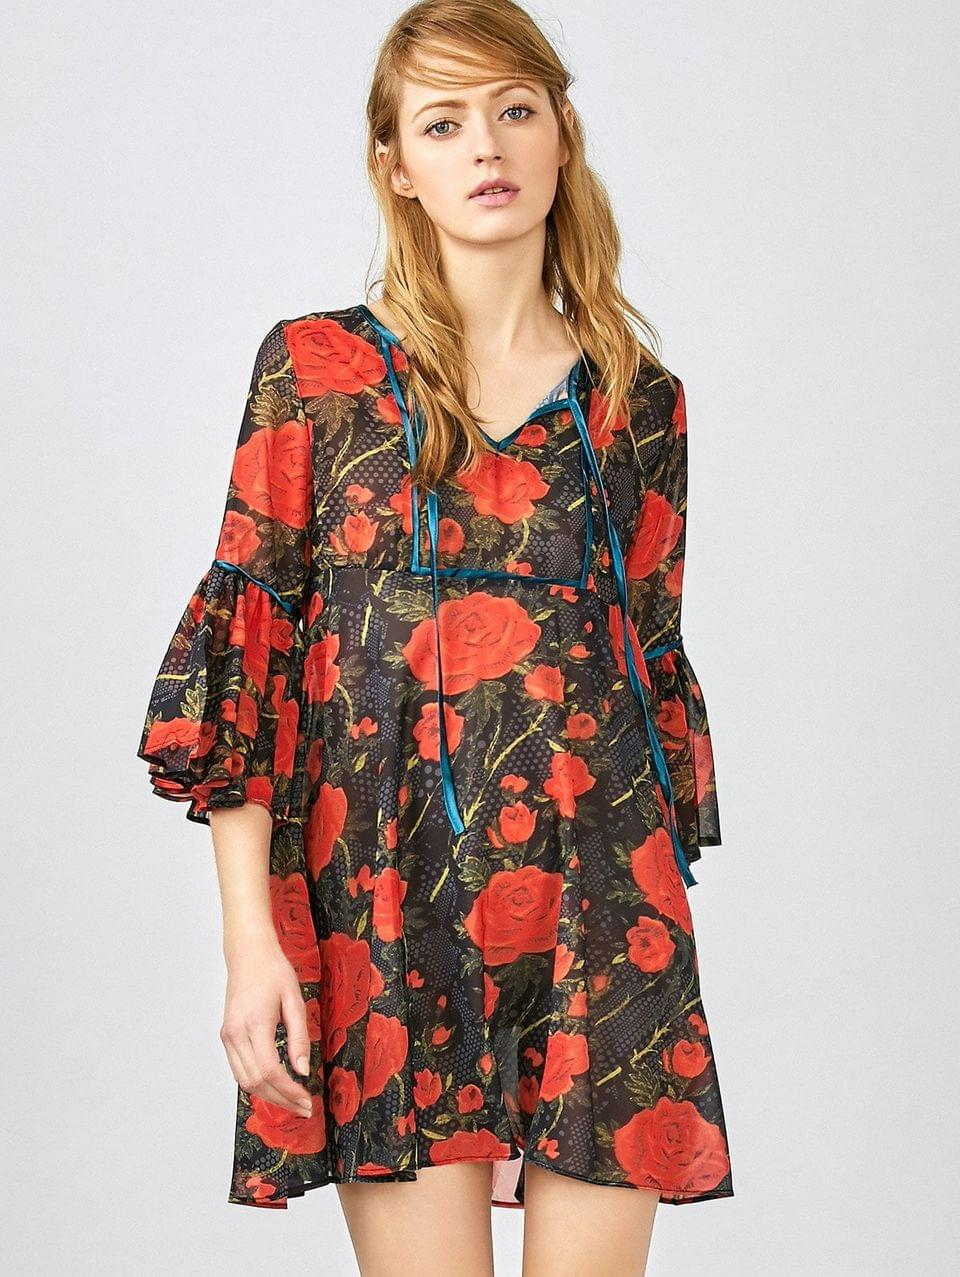 Women's Red Floral 3/4 Sleeve Blouse - Red S